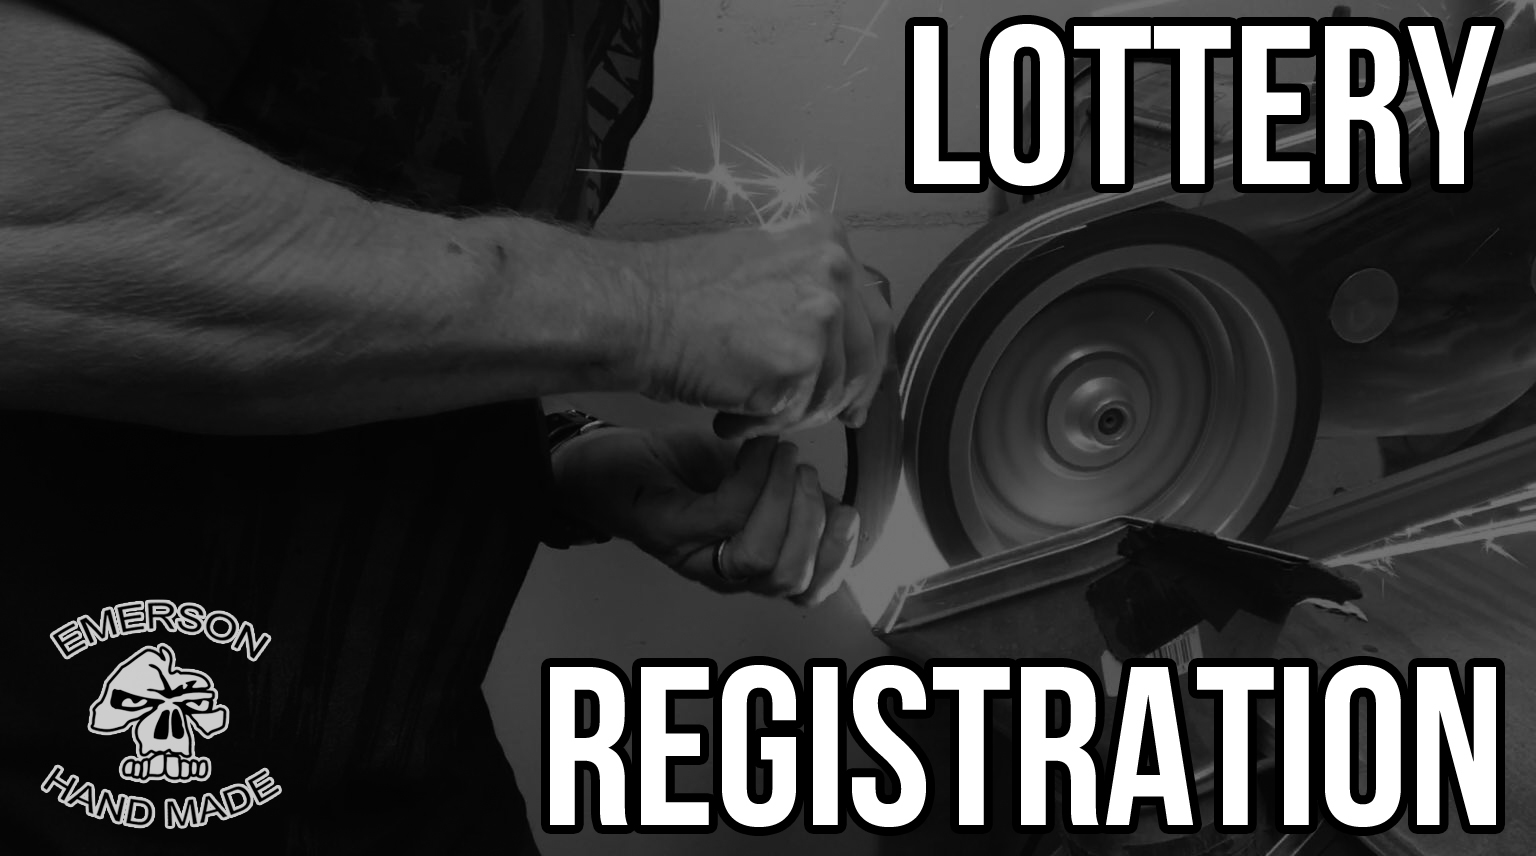 lottery Registration and auction image